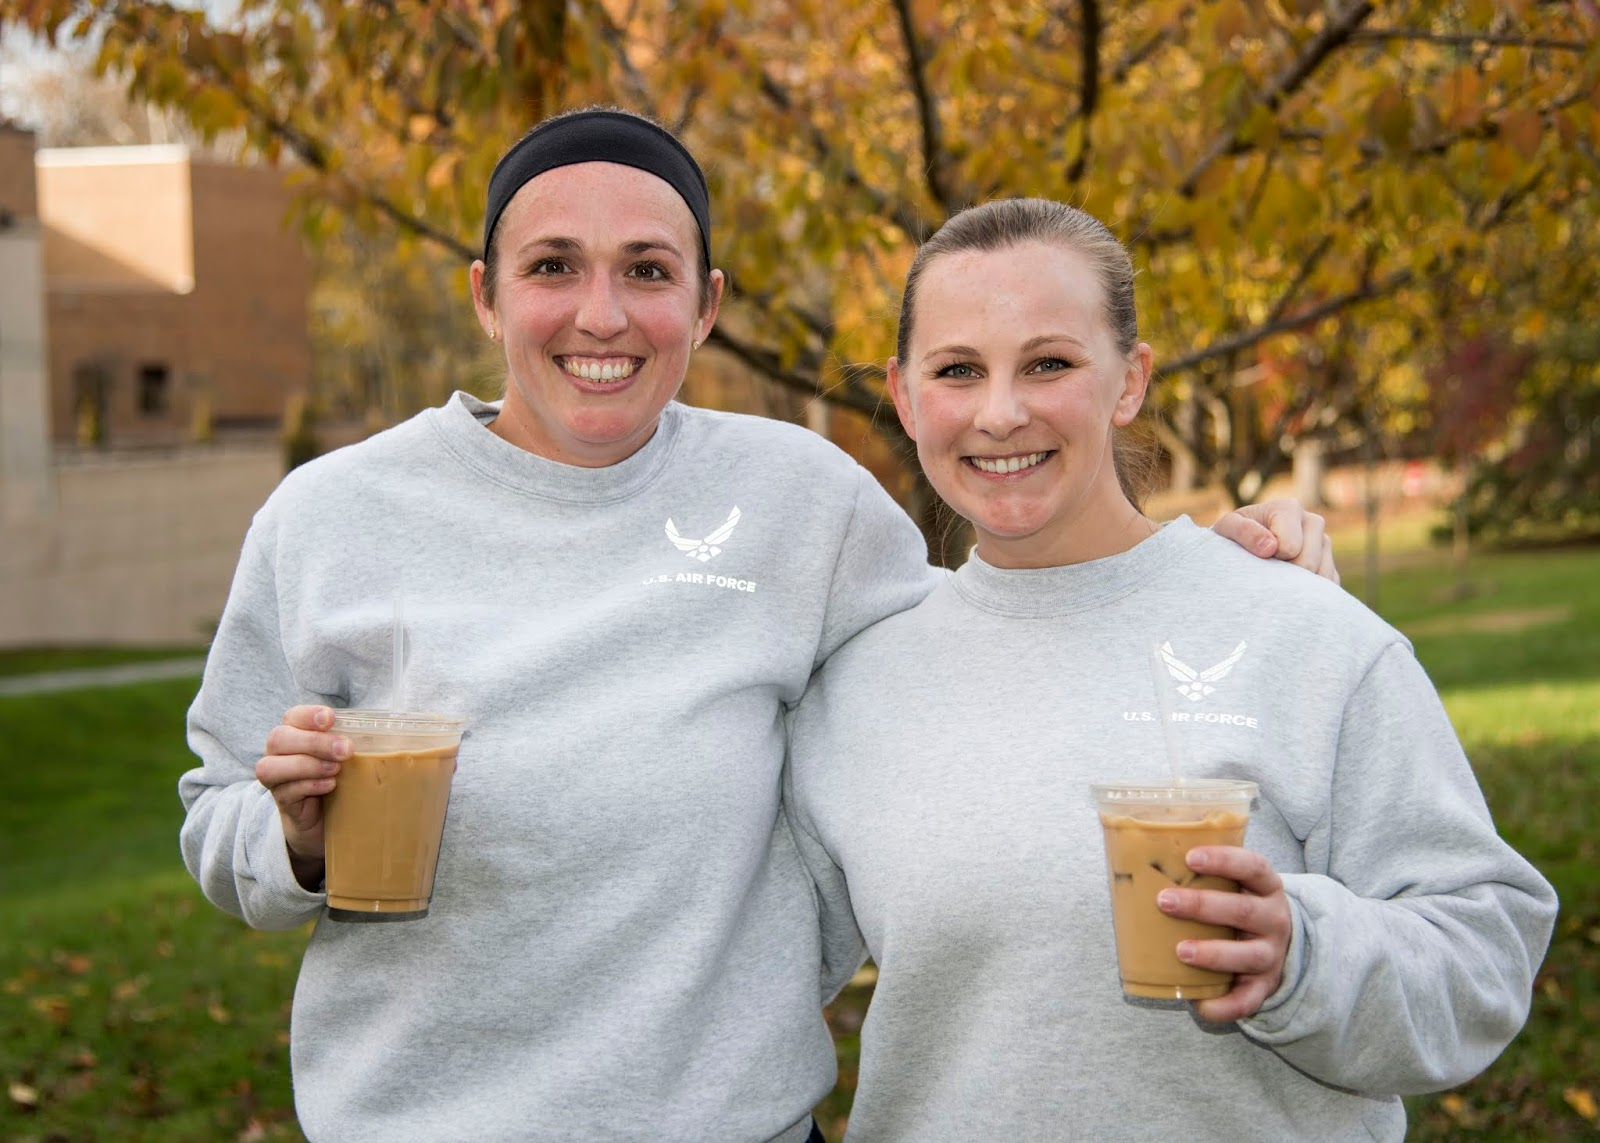 Two female Airmen are embracing each other with coffee in opposite hands. They are posing for a photo outside in front of the woods.